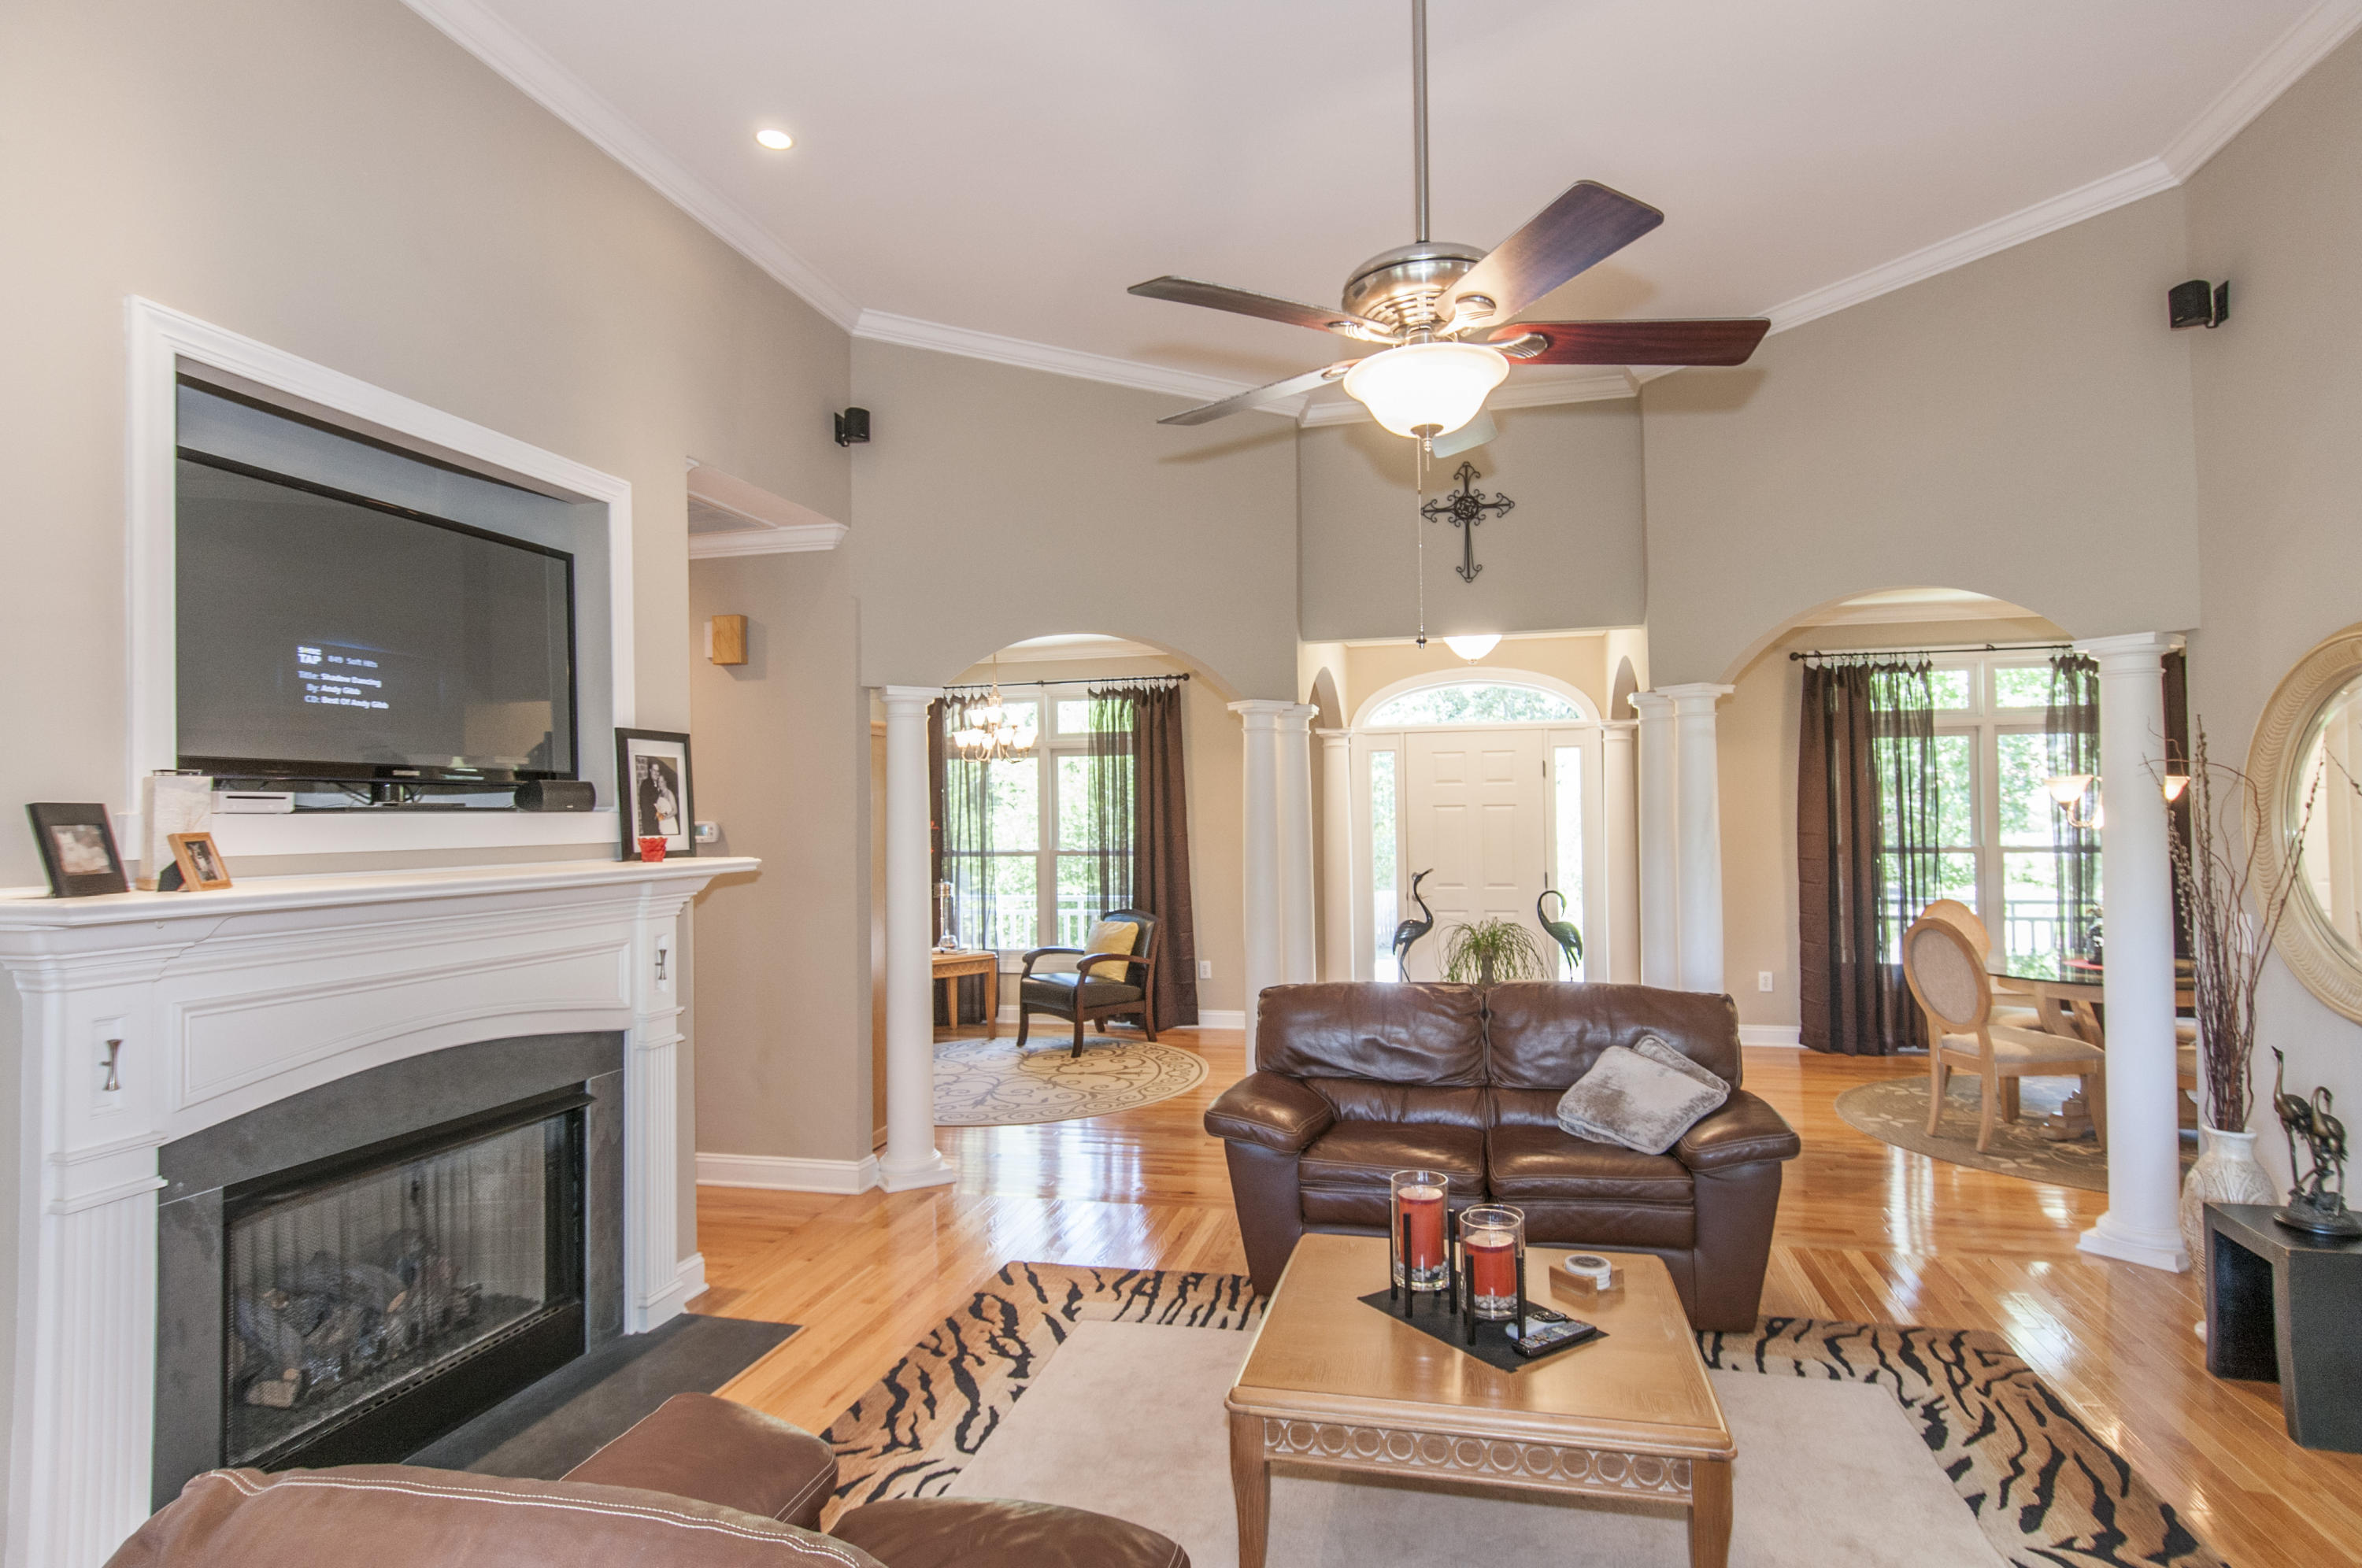 The Marshes at Rushland Landing Homes For Sale - 3022 Rushland Mews, Johns Island, SC - 10